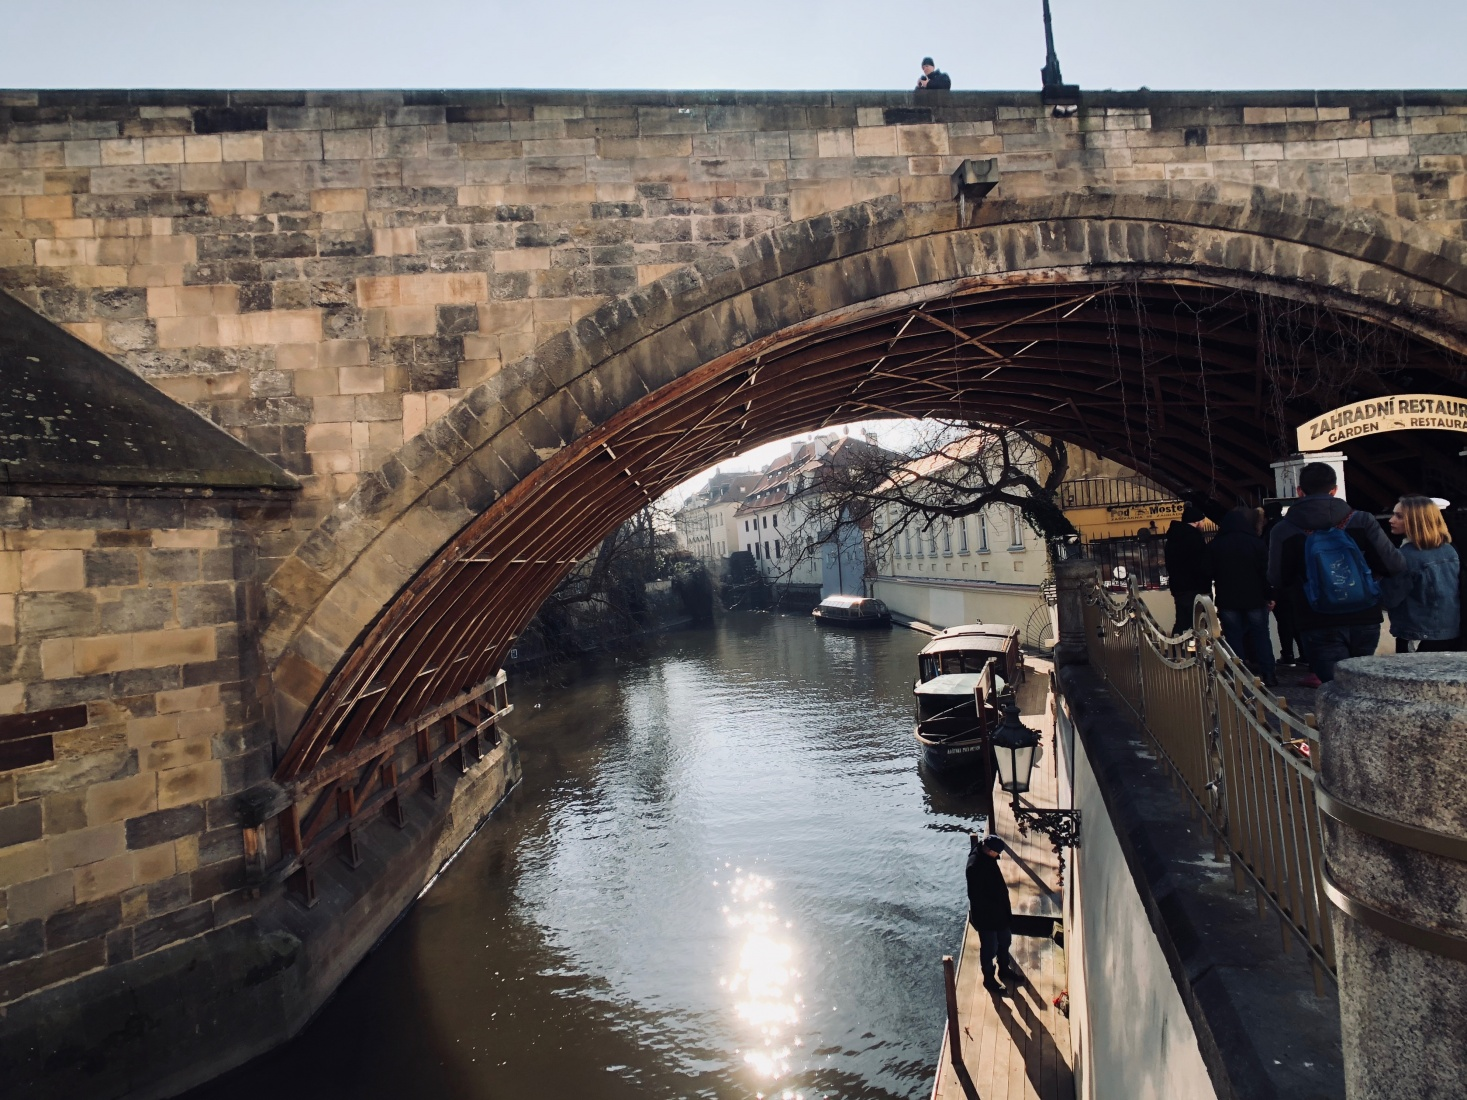 Underneath an arch of the Gothic Charles Bridge on the Certovka canal by Kampa Island, wooden reinforcements protecting boats.